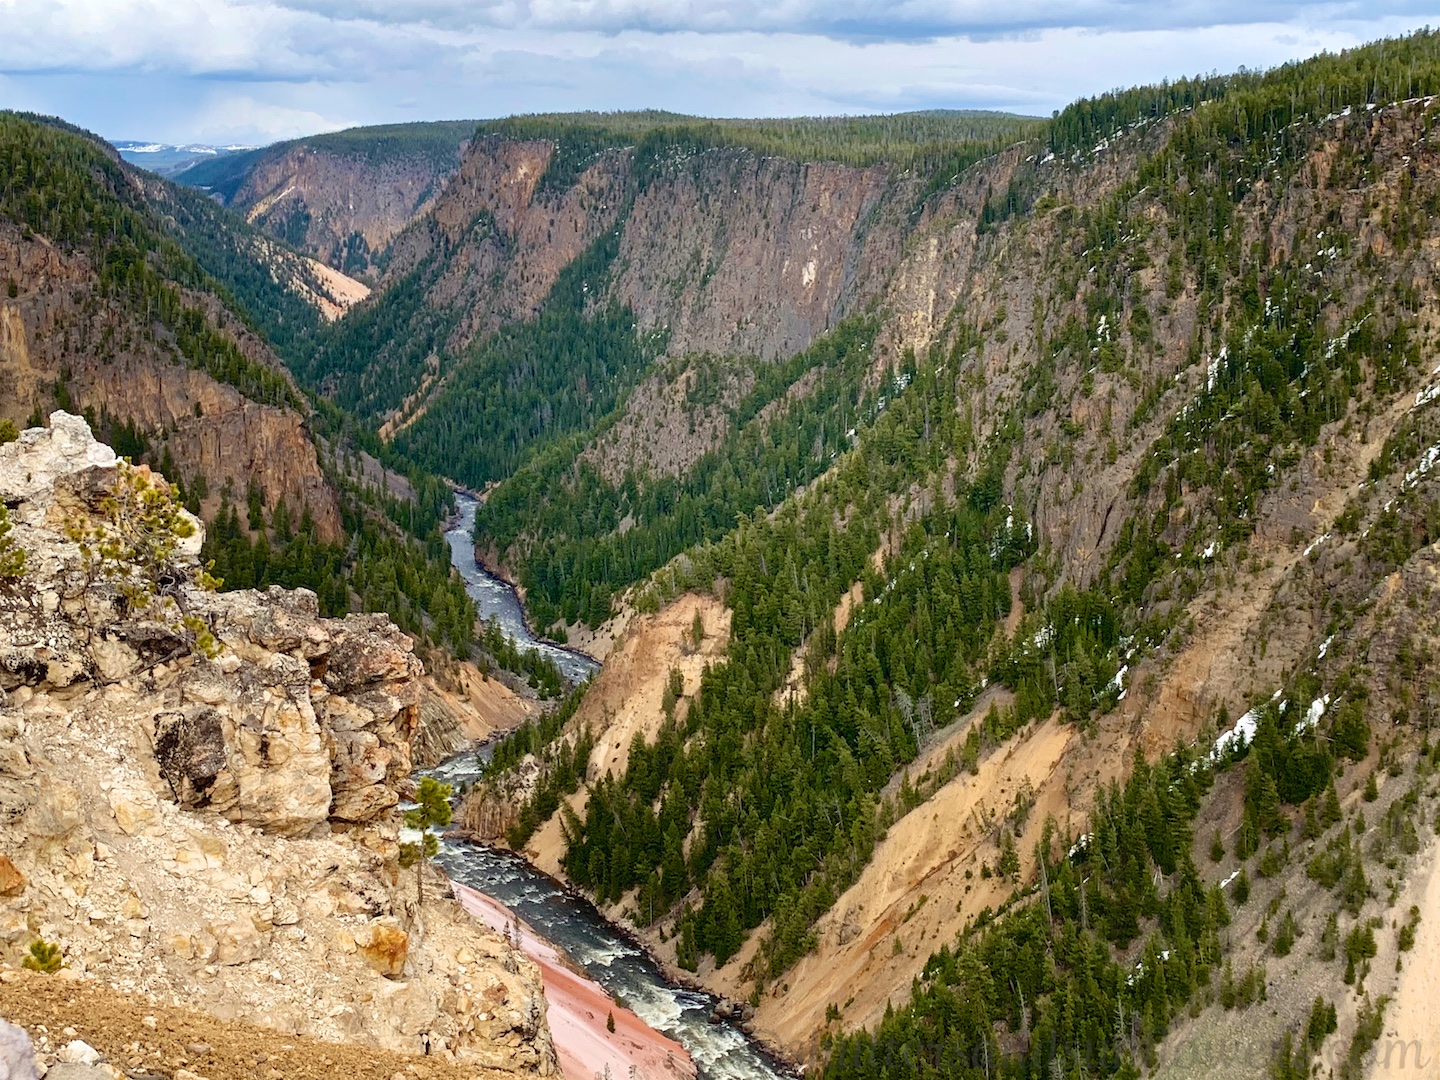 Grand Canyon of Yellowstone from Lower Falls at Yellowstone National Park, USA